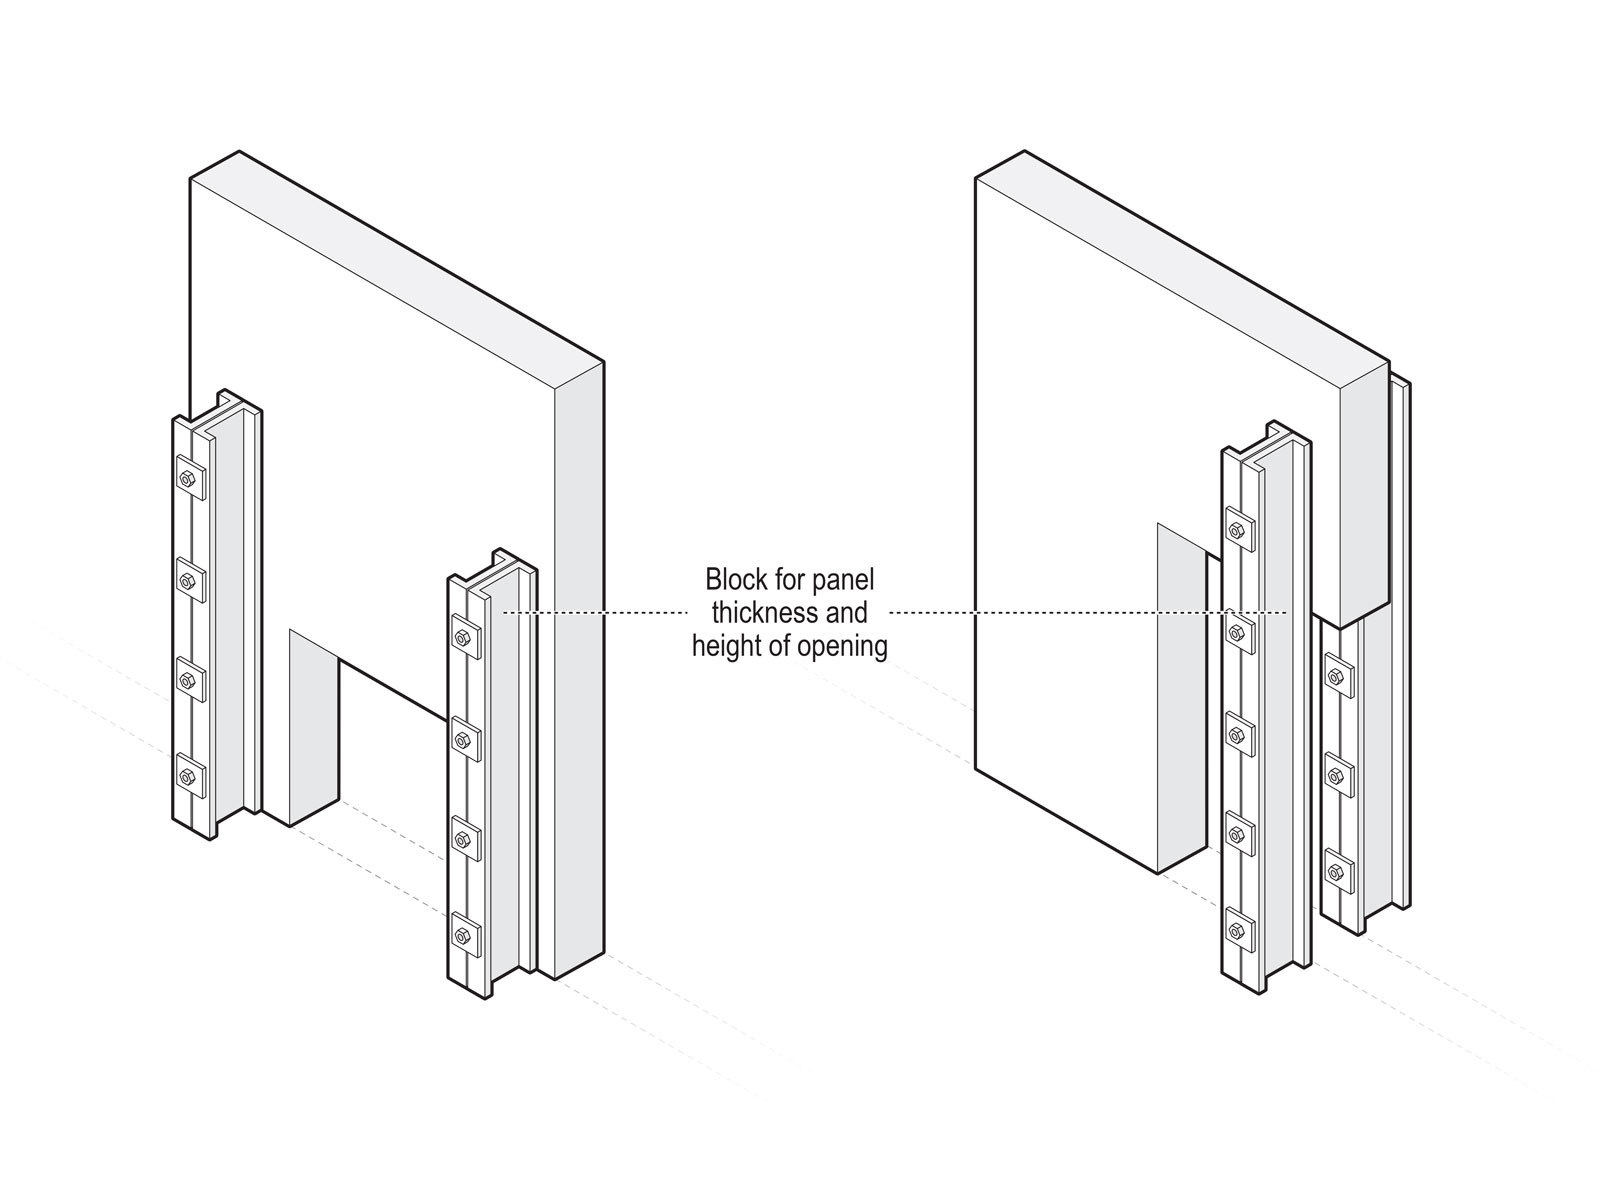 Diagrams for correct application of steel brace for concrete structure